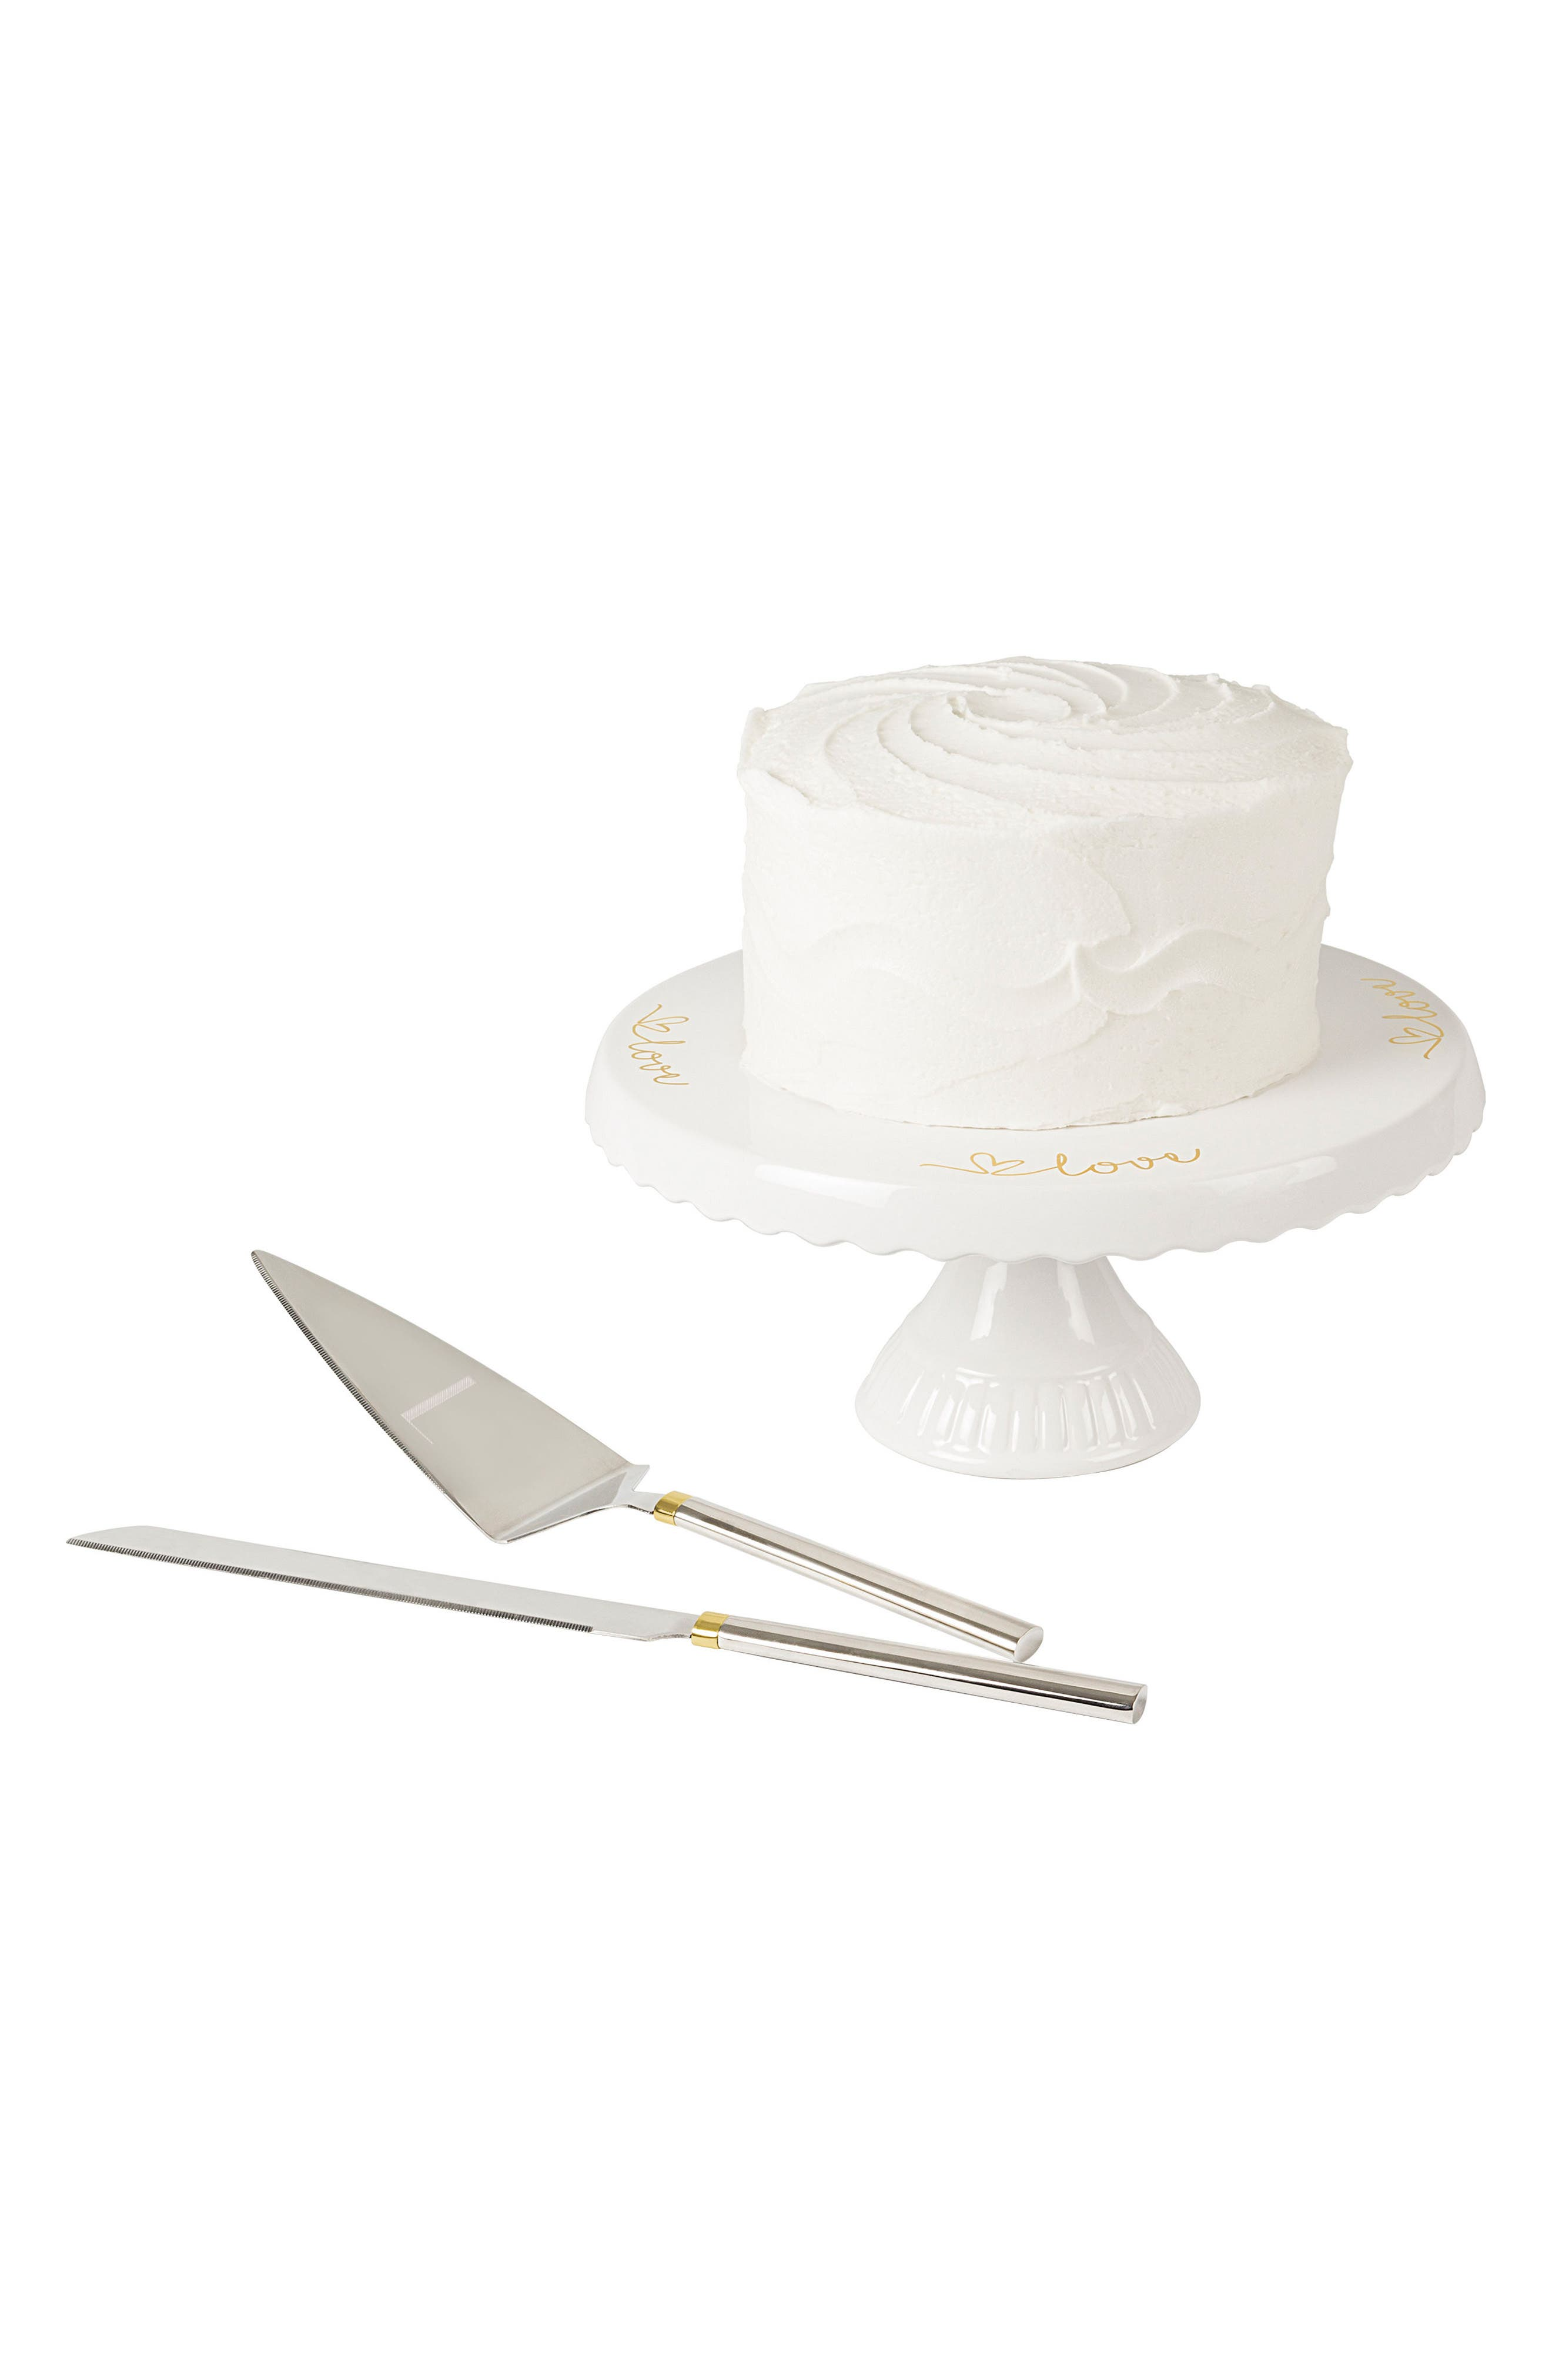 Love Monogram Cake Stand & Server Set,                             Main thumbnail 13, color,